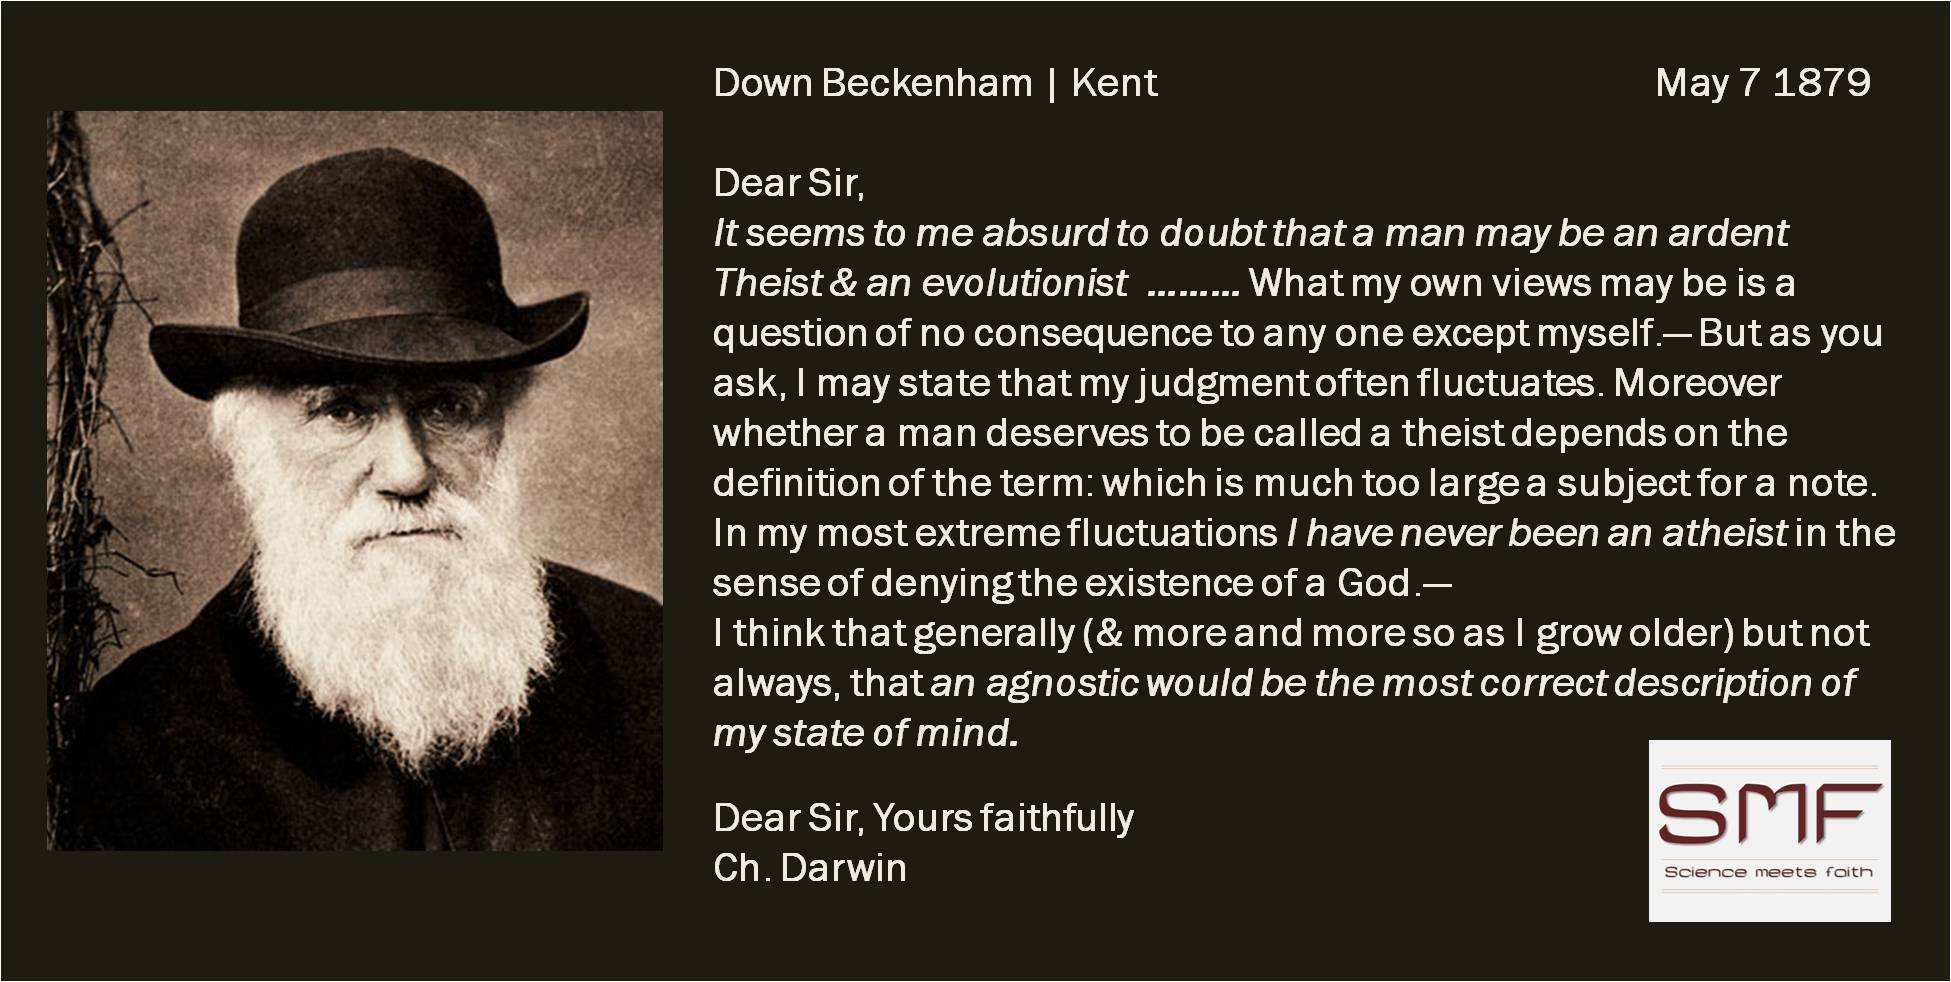 Charles Darwin an agnostic 07 May 1879